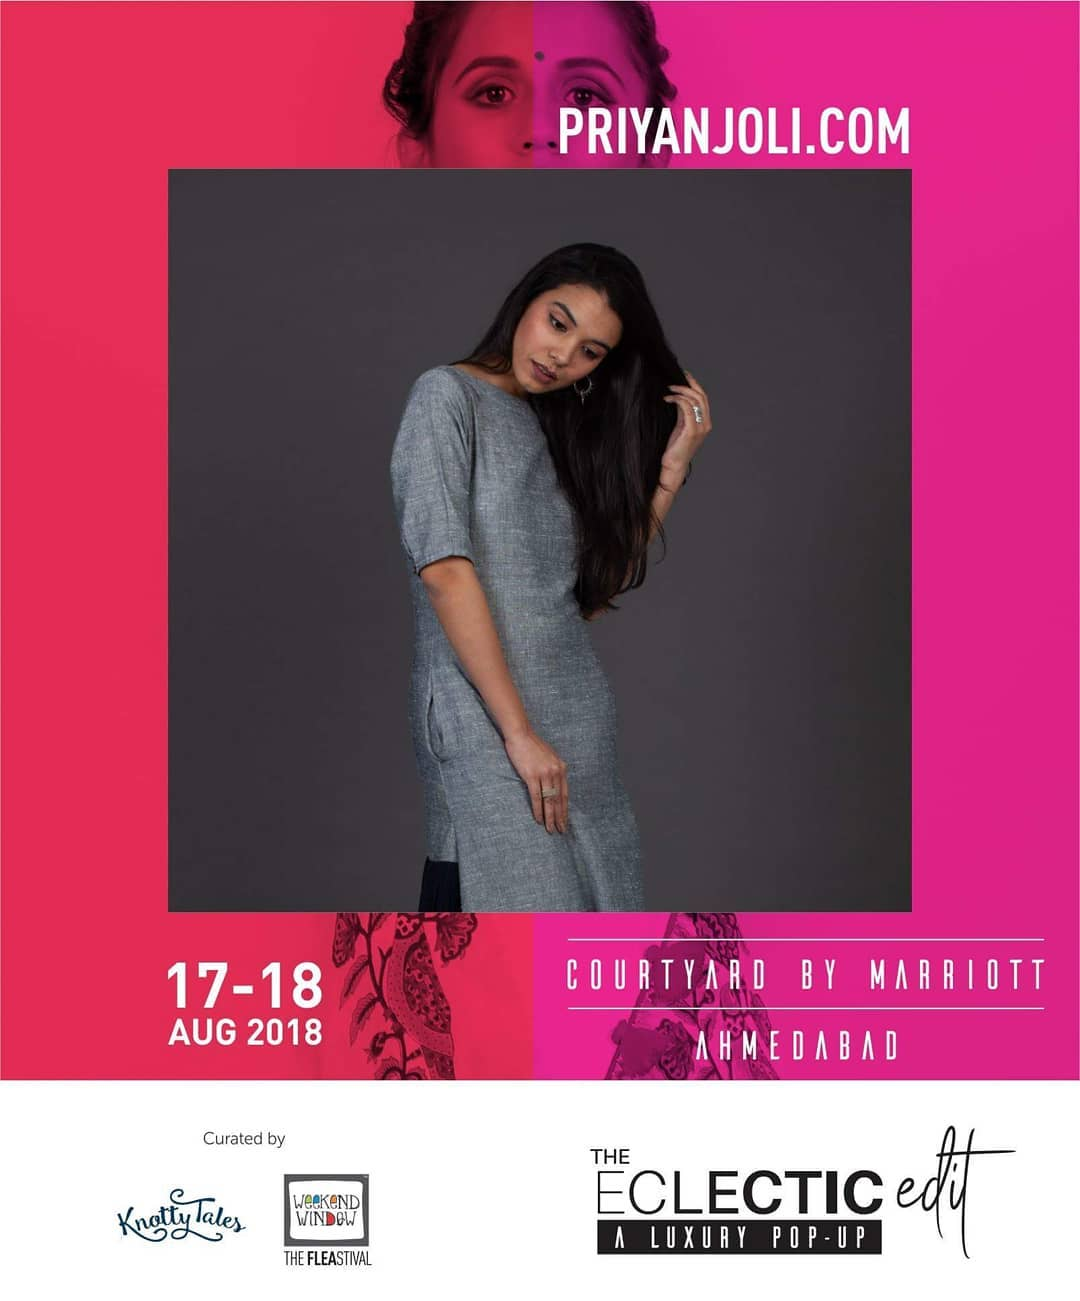 @priyanjoli as a brand believes strongly in the beauty of handmade. Inspired by the rich textile heritage of India, they have collaborated with clusters of weavers and artisans to create exclusive designs and texture.  The clothing line seeks to bridge the gap between our traditional techniques and the constant evolution of modern fashion.They developed an understanding of what people want to wear and the Chennai Studio houses our core design team as well as master tailors who crafts our design sketches into reality.  #priyanjoli #sustianablefashion #ethicallysourced #slowfashion #chooseyourlocaldesigner #beyourself #women  #sistersquad #wivesandmothers #mothersanddaughters #loversandfriends #everydaywear #knottytales #weekendwindow #theeclecticedit